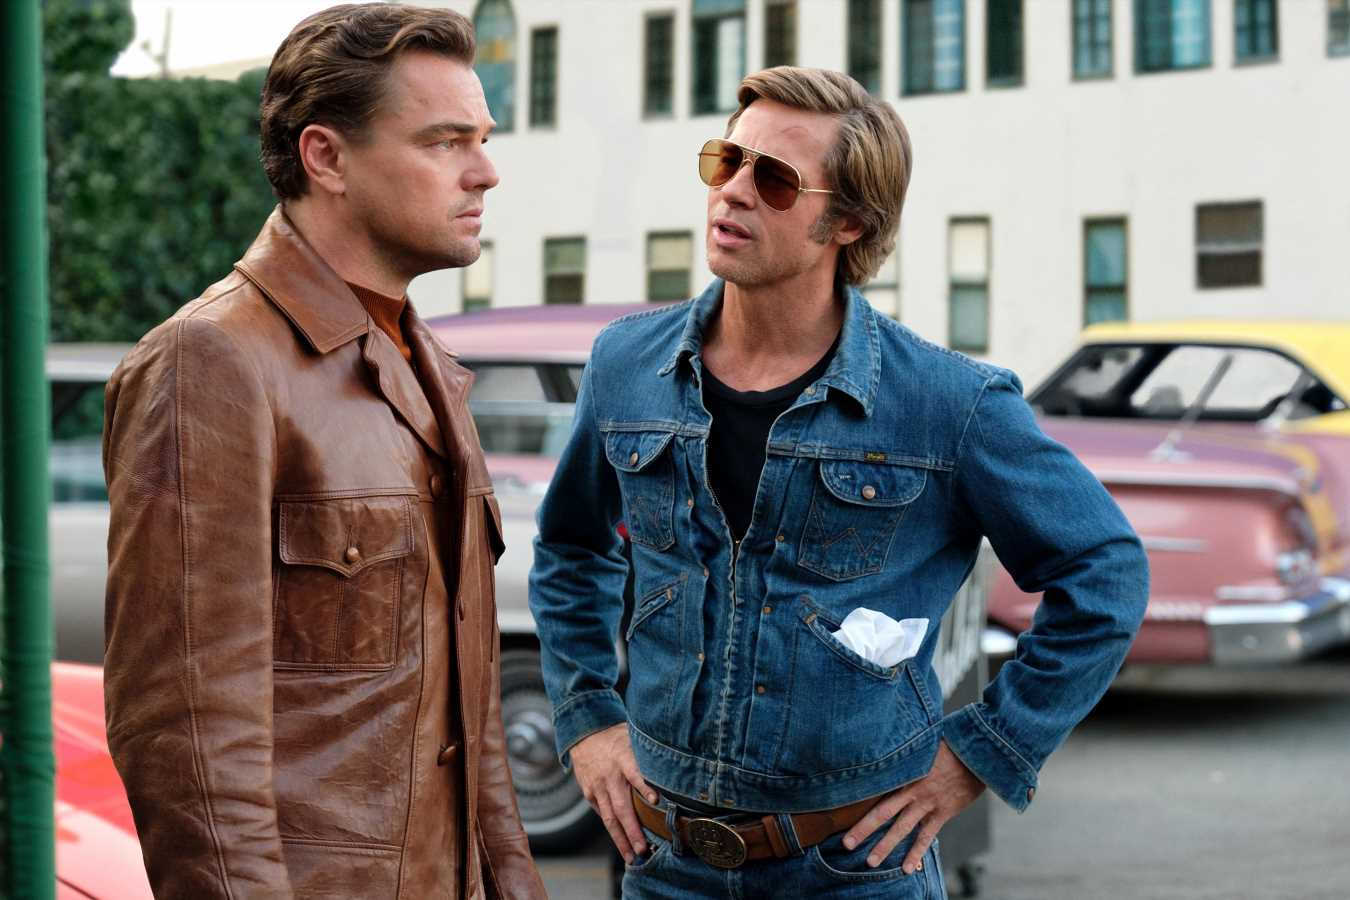 Quentin Tarantino's Once Upon a Time in Hollywood review: A wild, shaggy '60s thrill ride